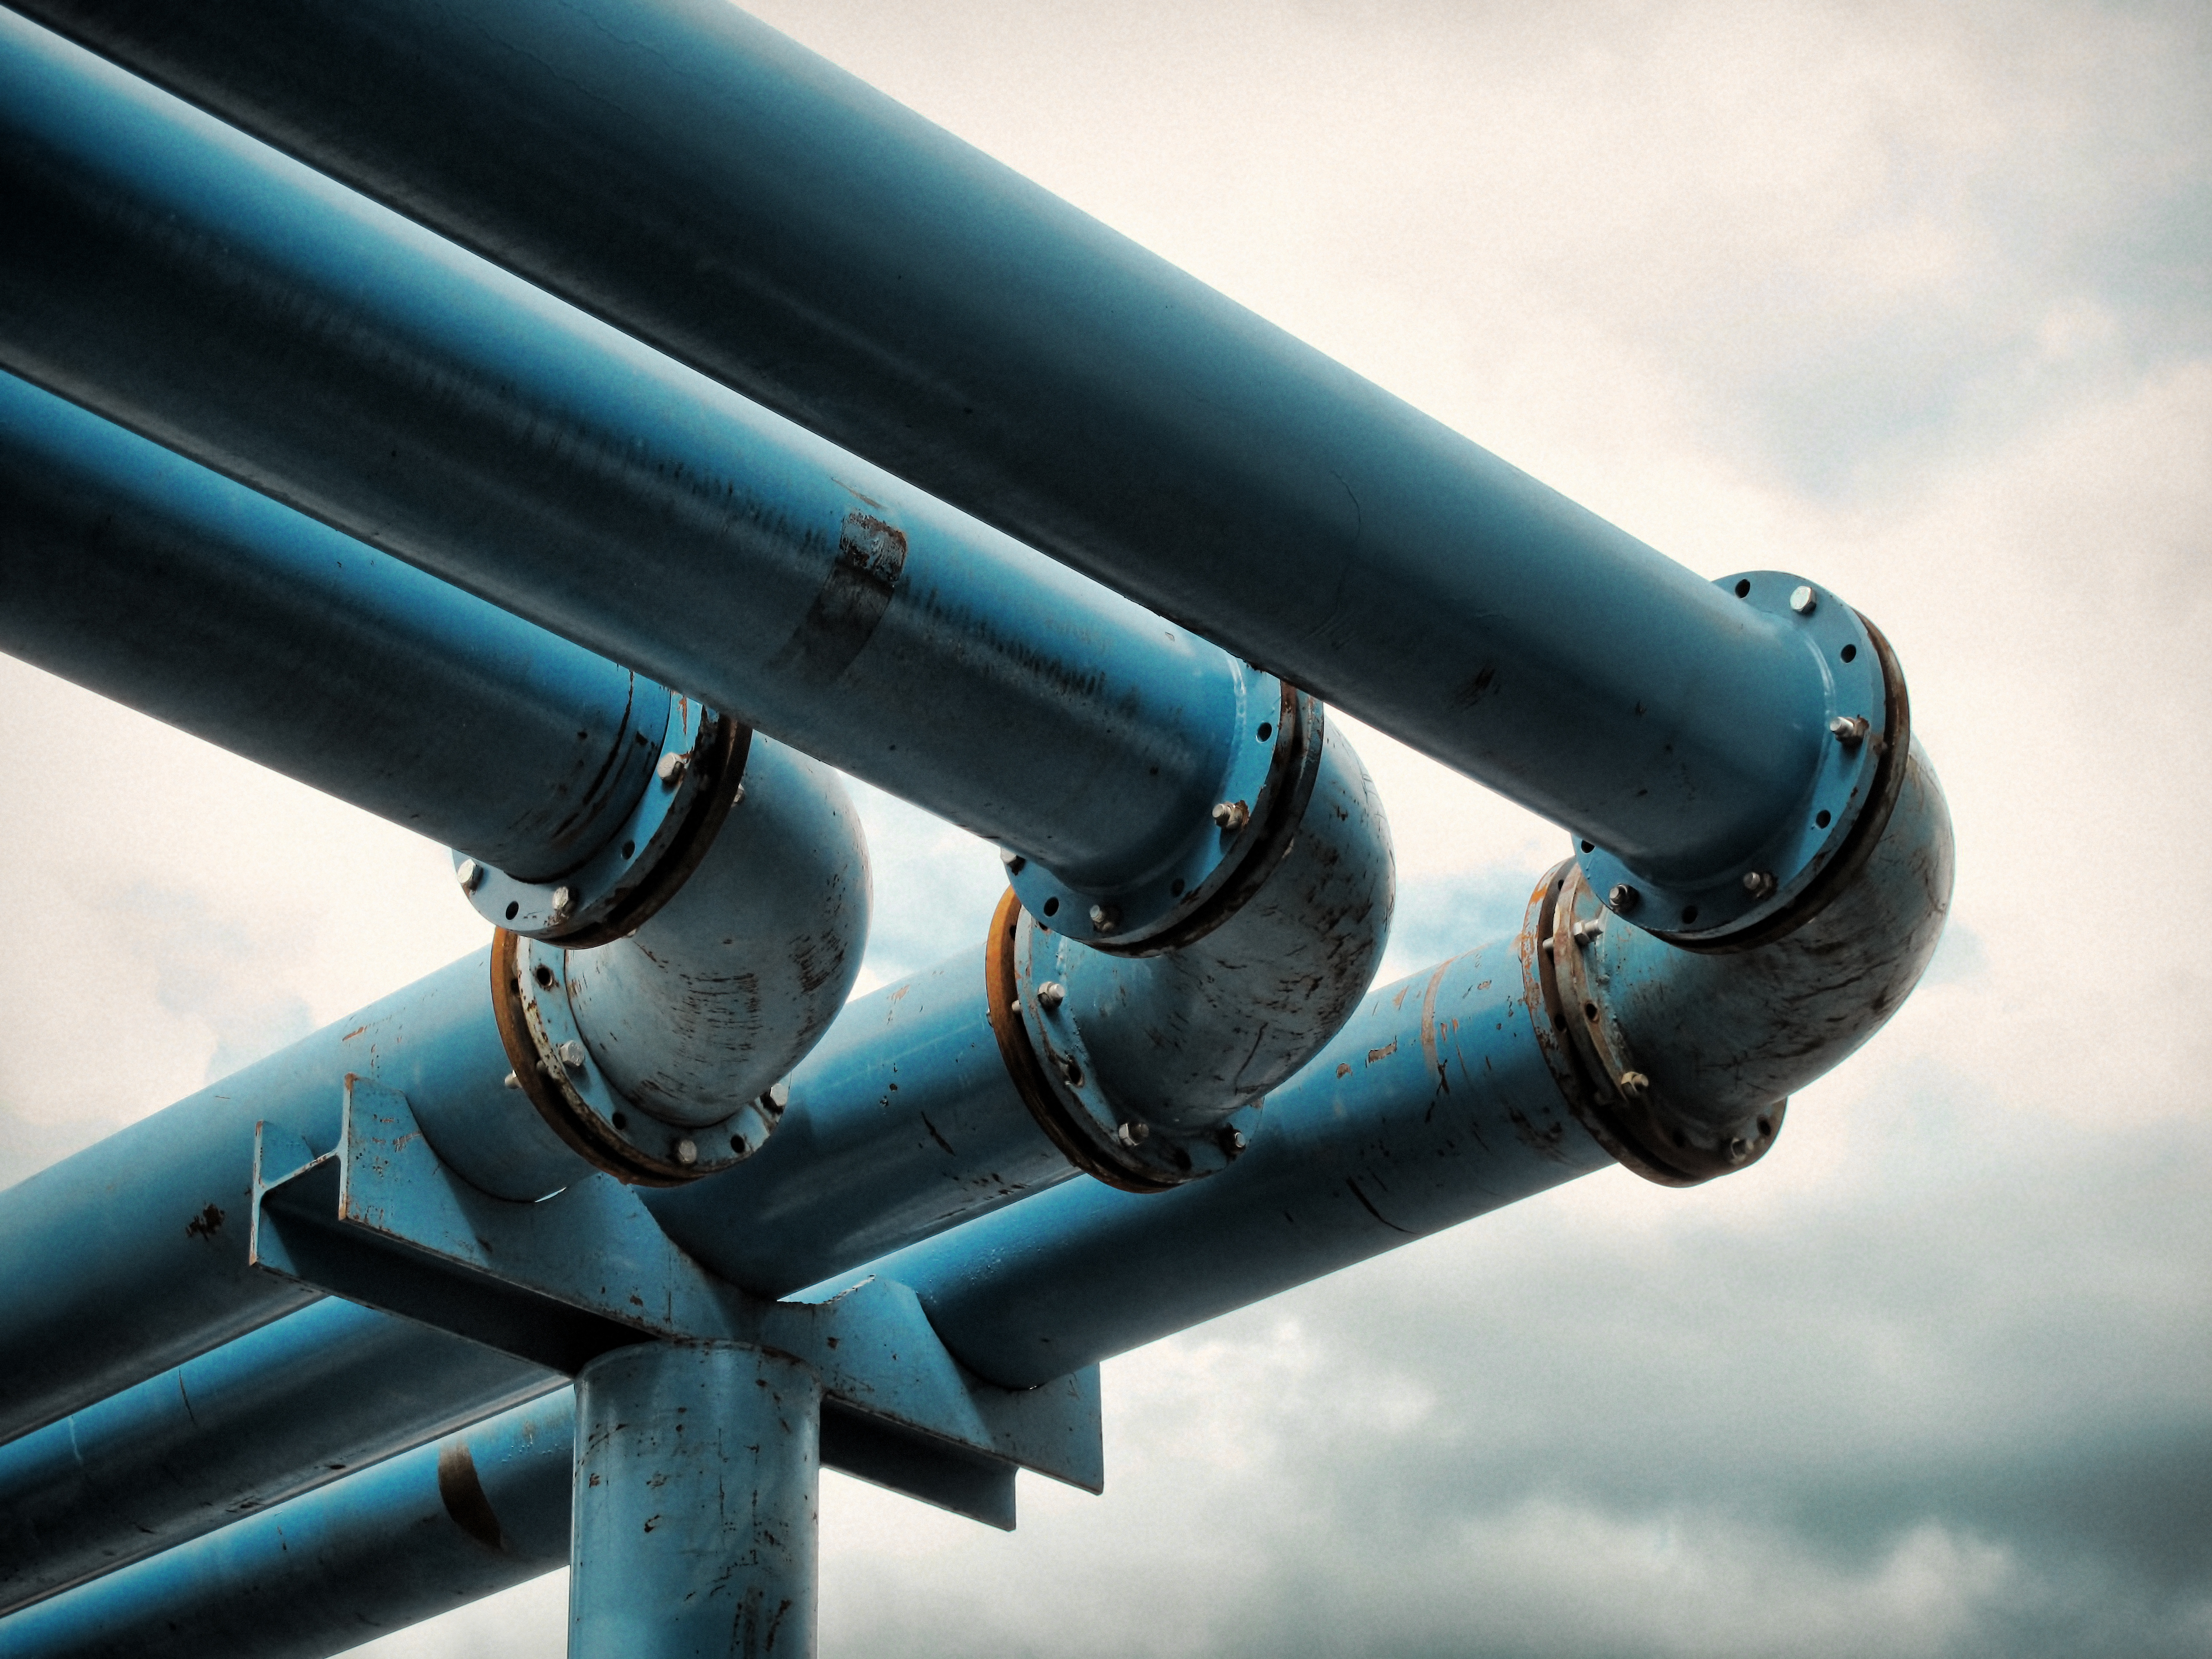 Detail of giant blue-colored water pipes, a peculiar system used to pump away ground-water from flooded foundations of construction sites.